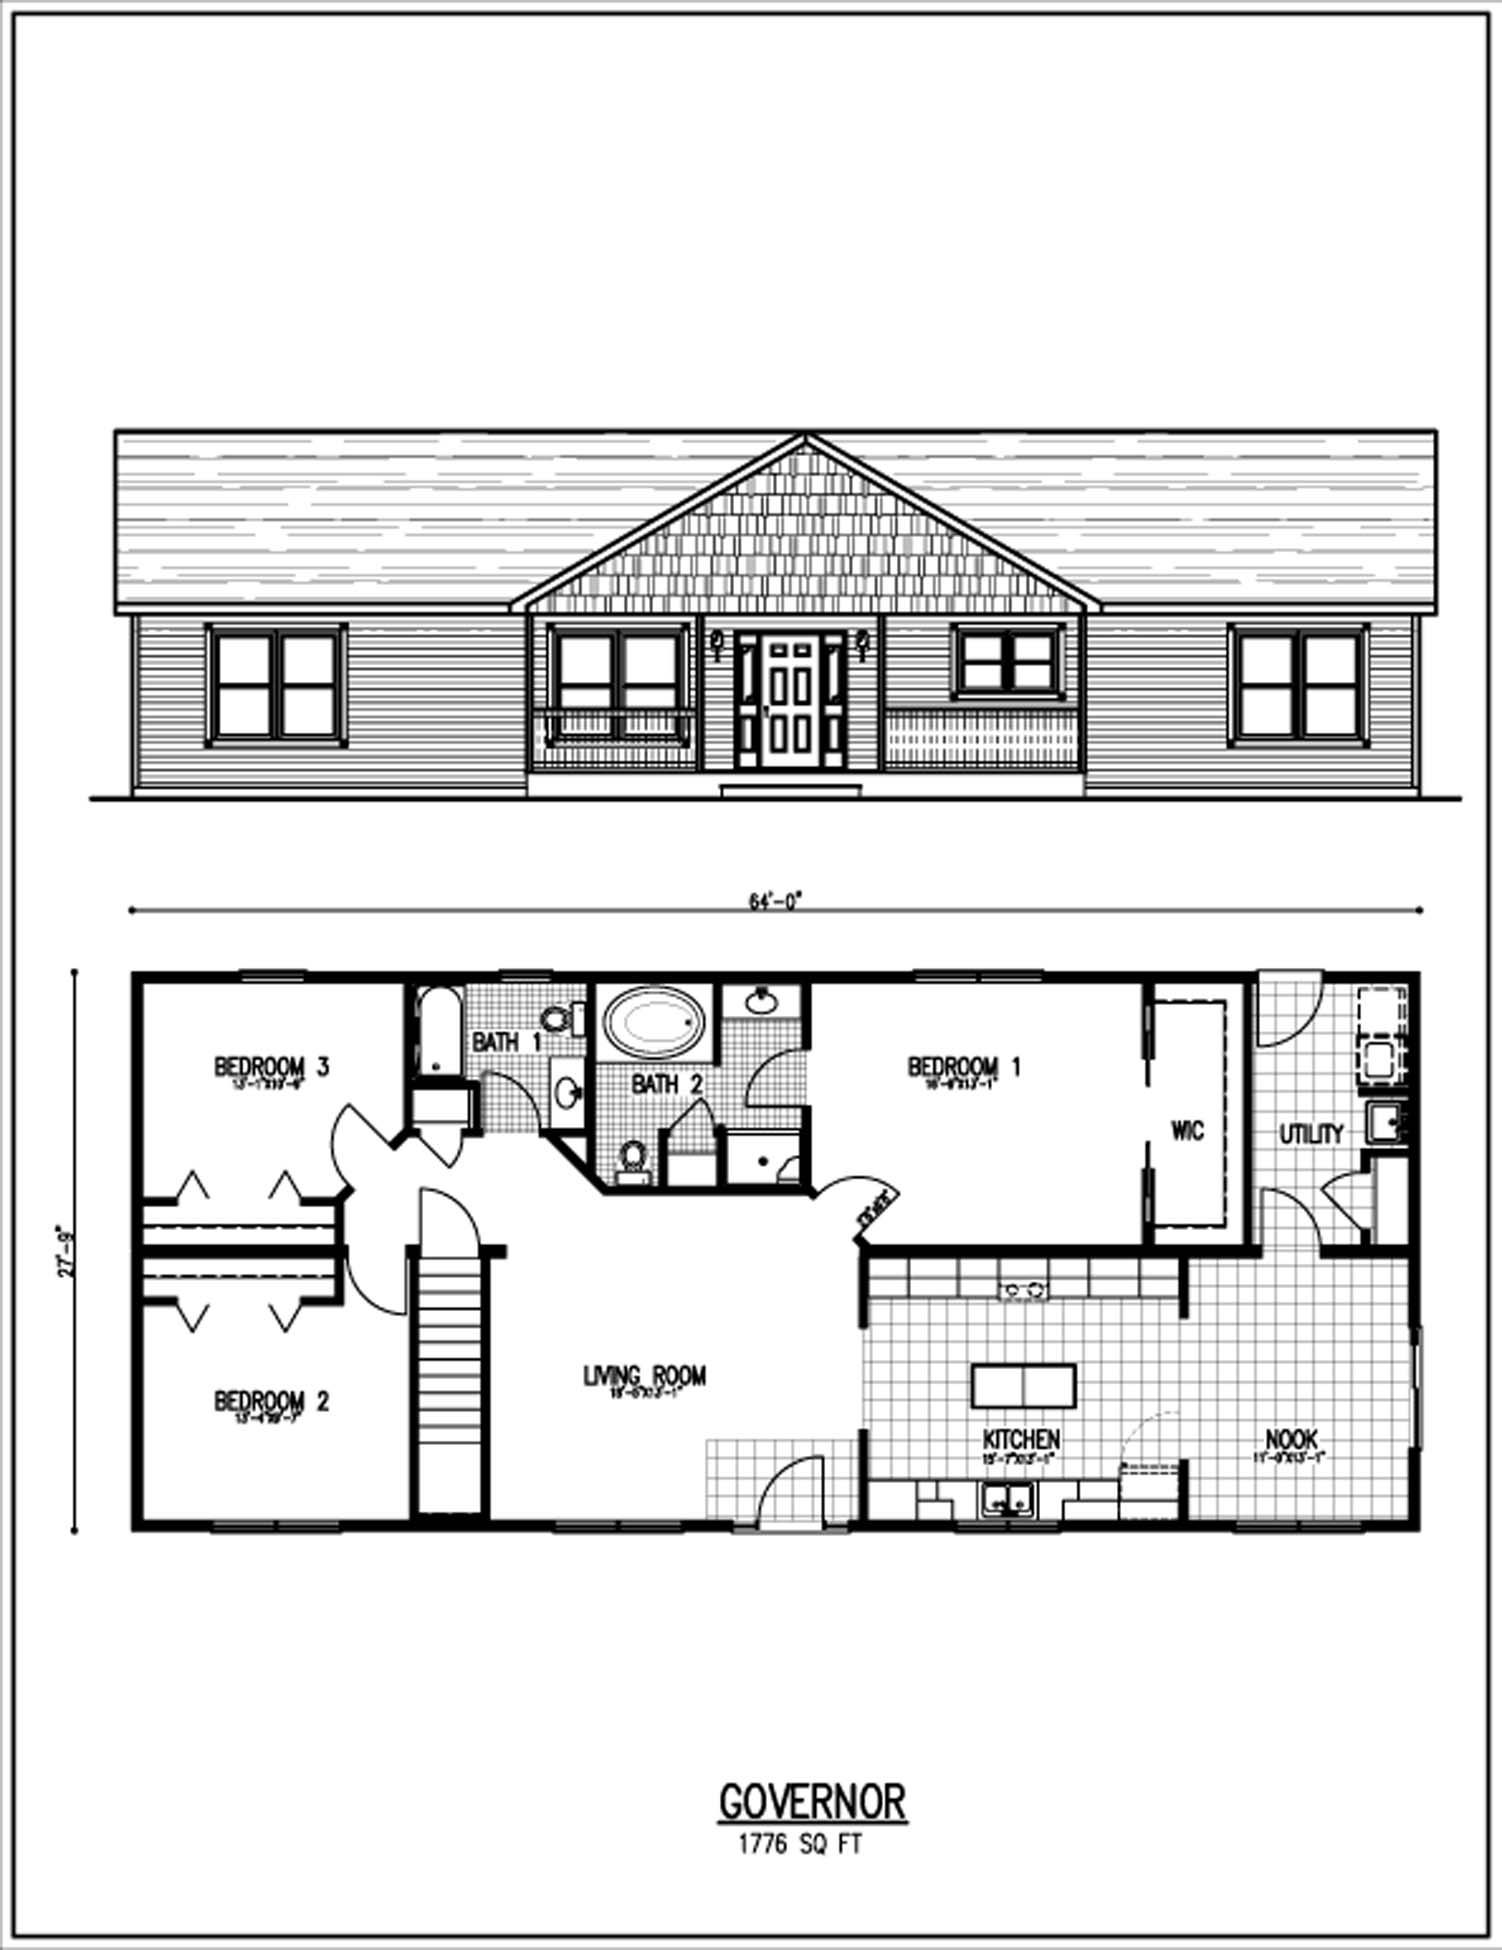 Floor plans by shawam082498 on pinterest floor plans for Ranch building plans